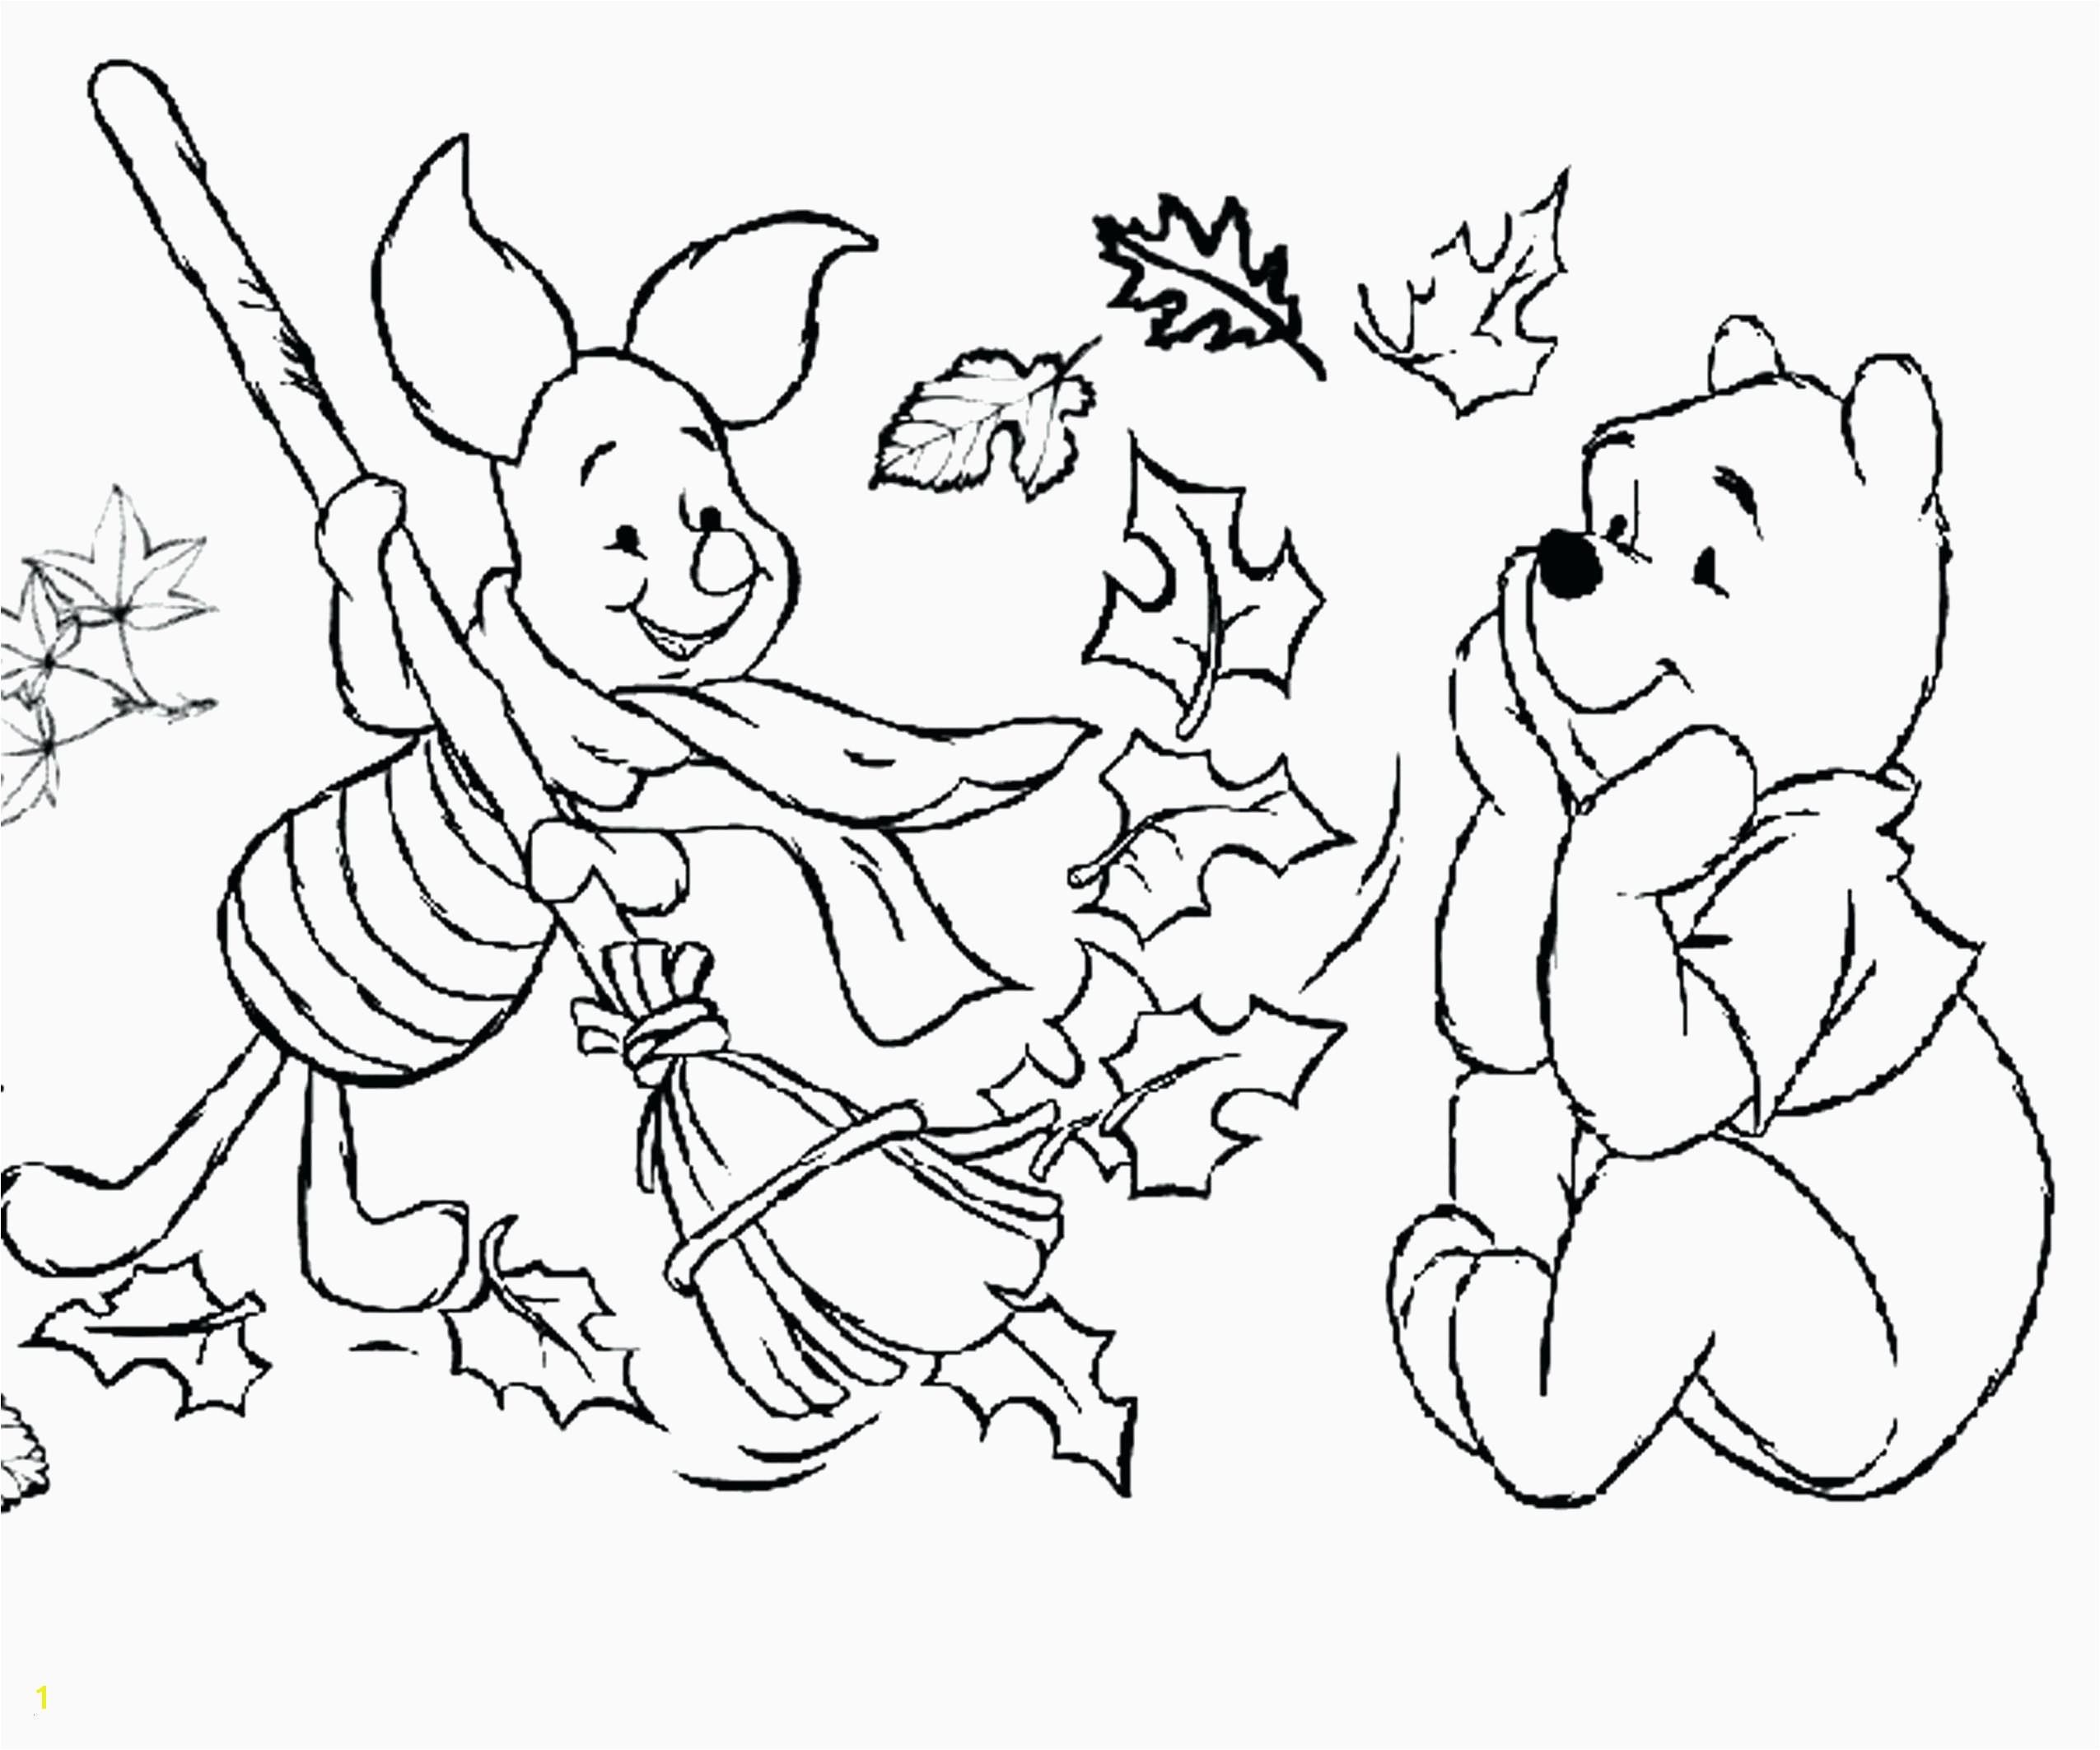 Pocoyo Coloring Pages line Lovely Minion Coloring Pages Printable Coloring Pages Coloring Pages Pocoyo Coloring